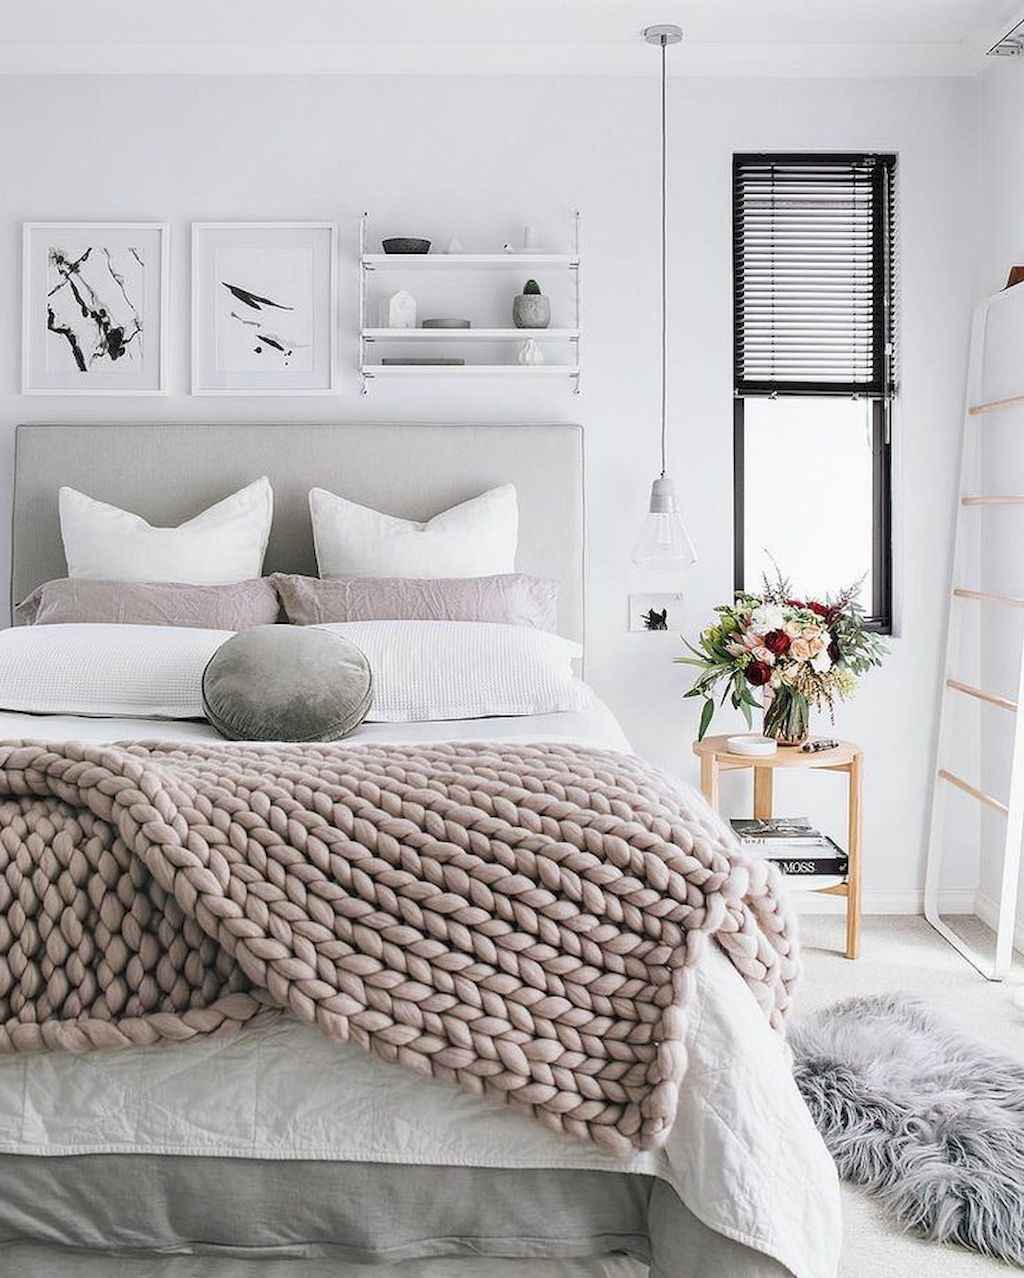 Couples first apartment decorating ideas (59)